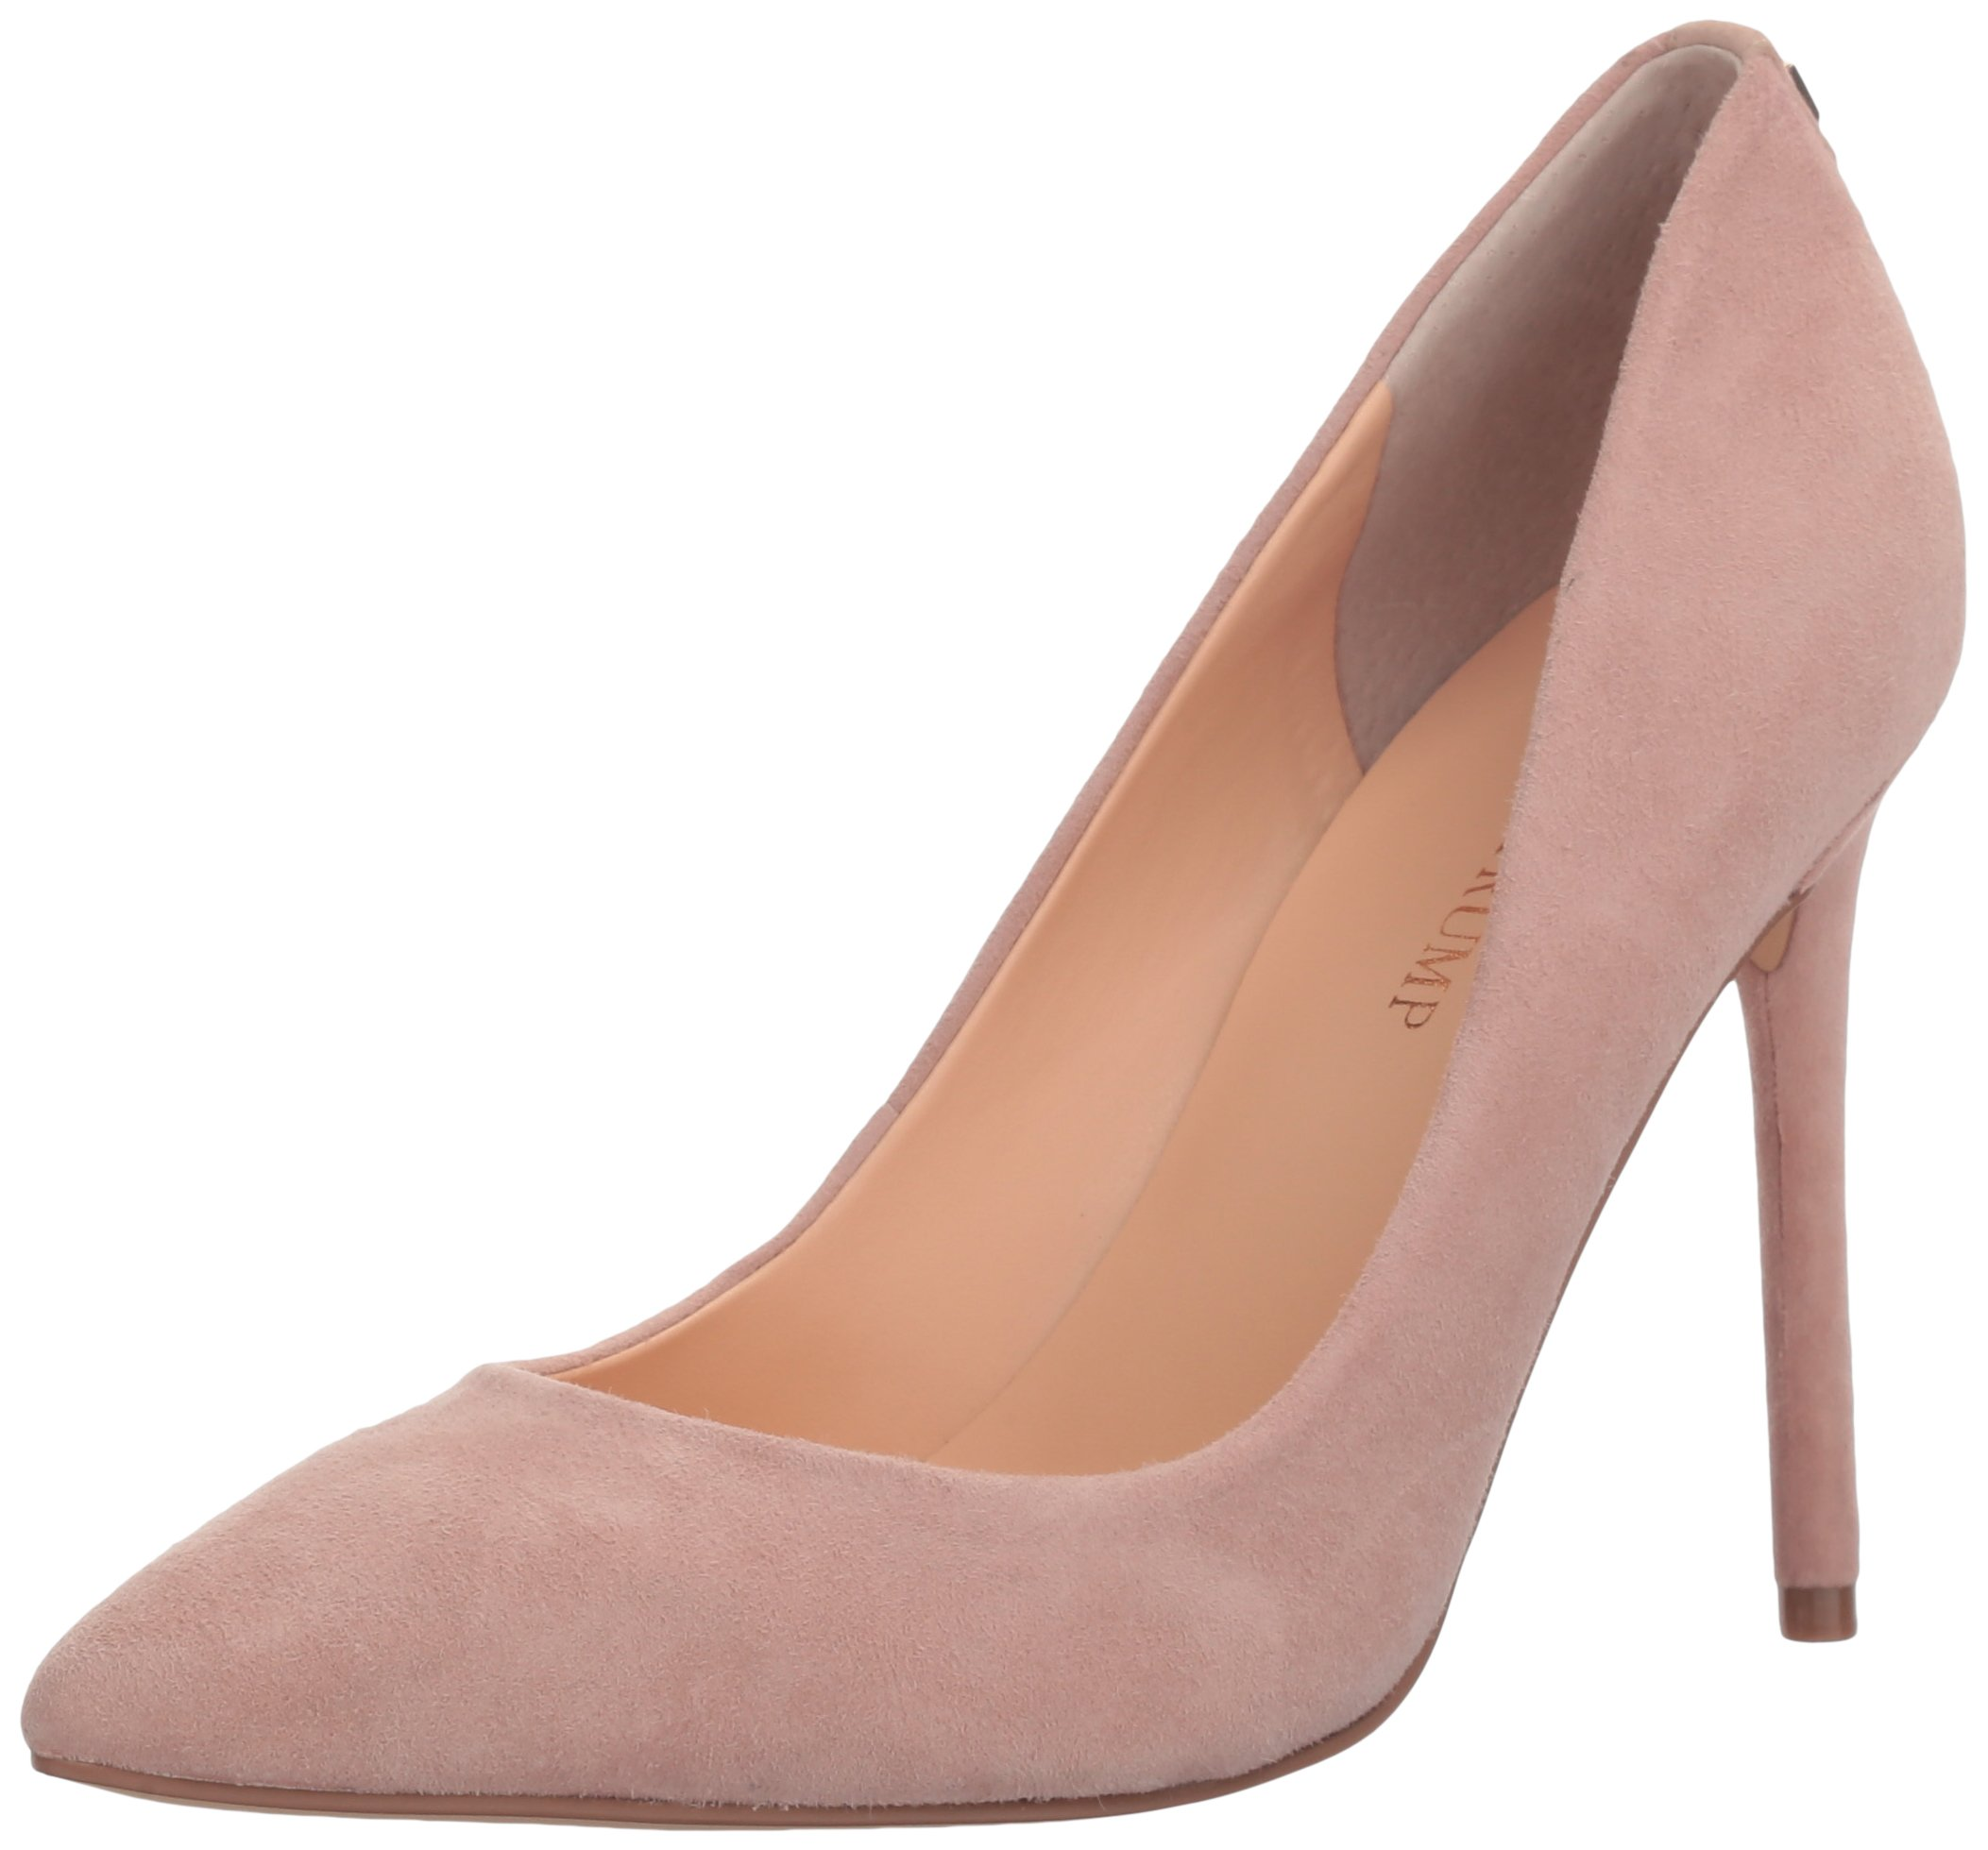 Ivanka Trump Women's Kayden4 Pump, Natural, 7.5 Medium US